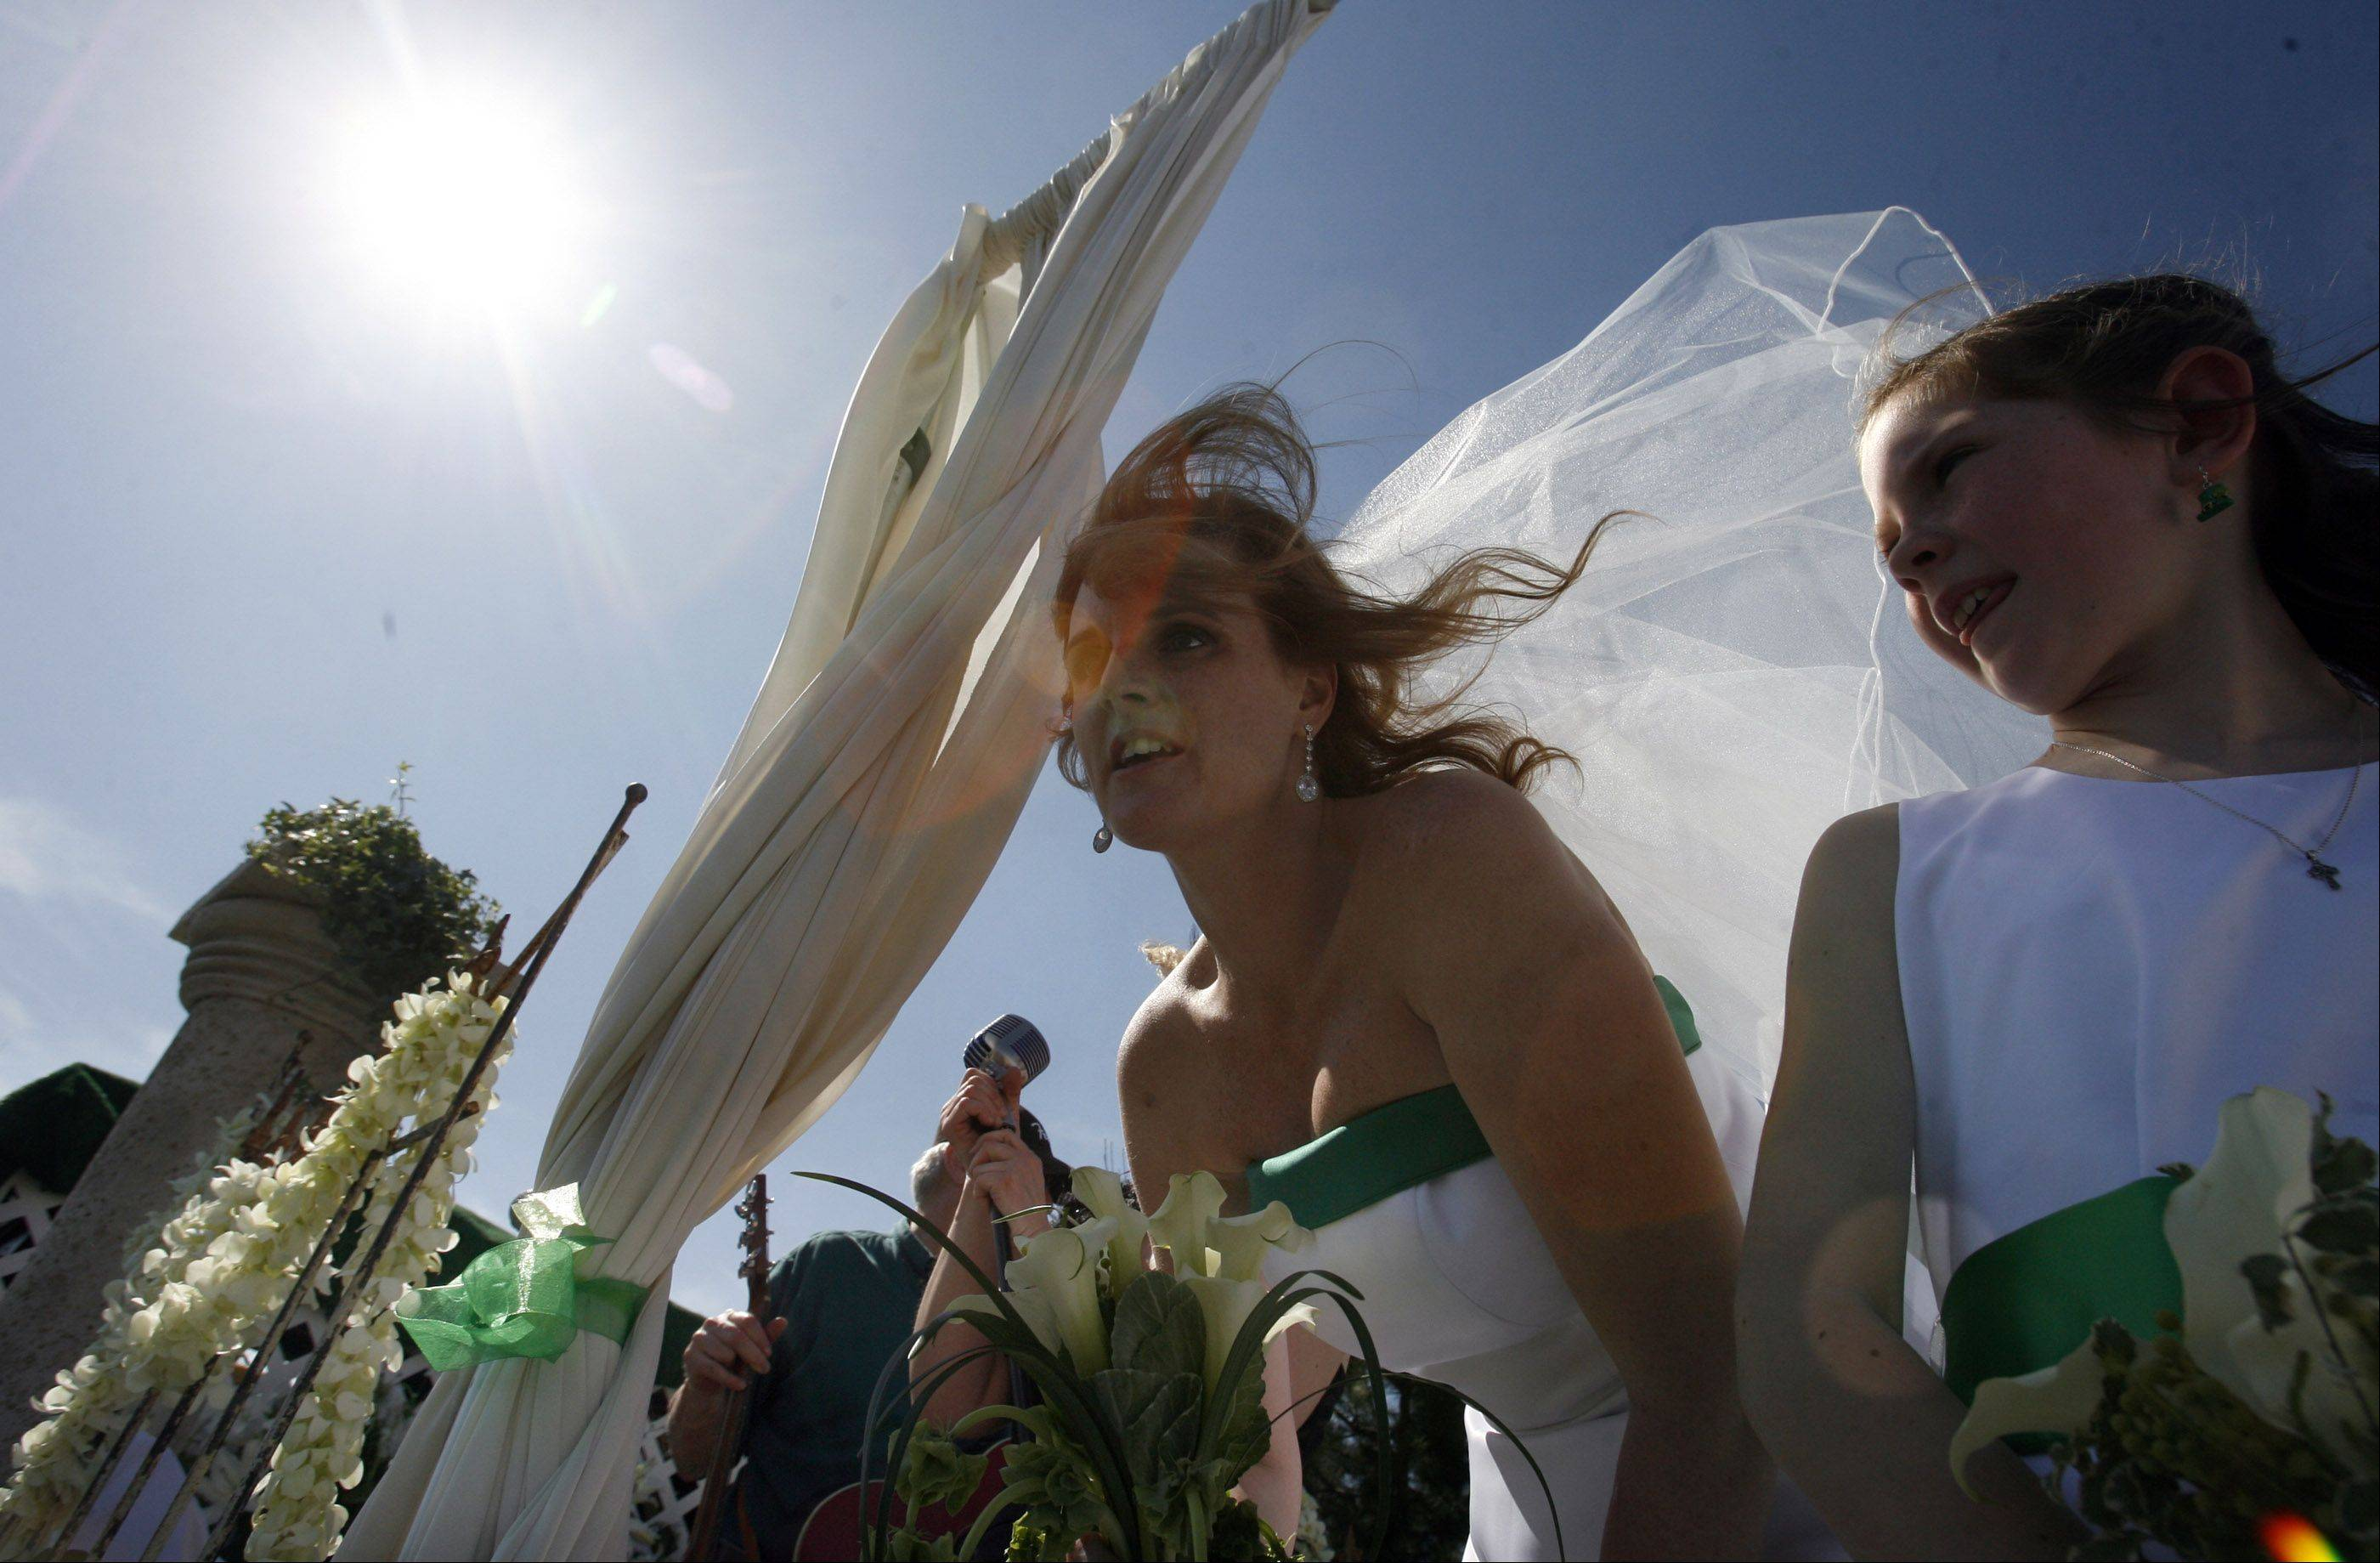 Tara Teschky vail blows in the wind while riding on her wedding float during the Lake Villa St. Patrick's Day parade on Saturday, March 17th.